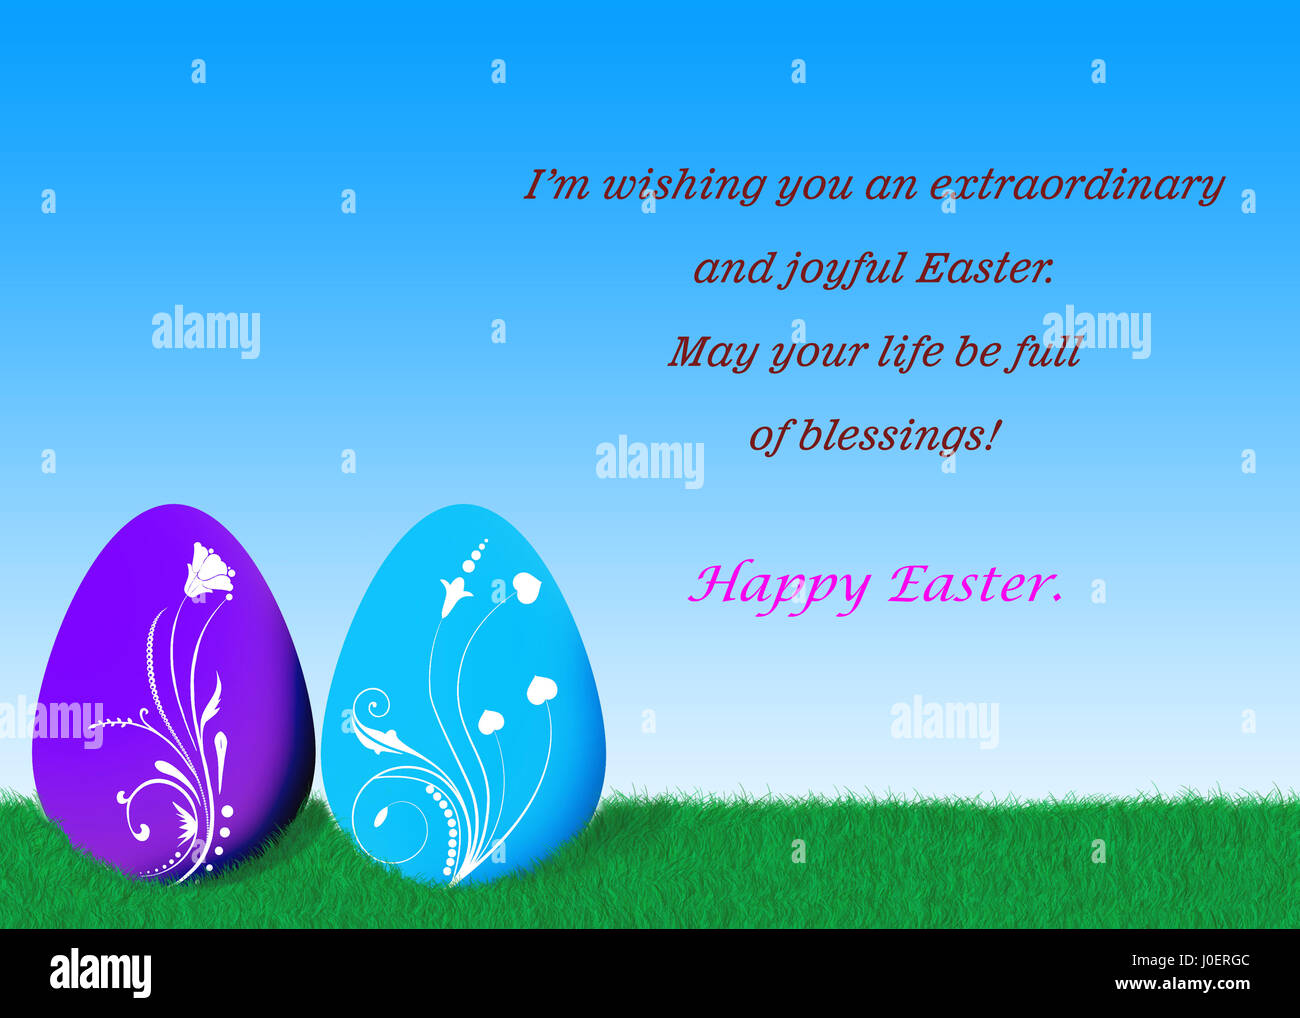 Happy Easter Day Quotes Stock Photo Alamy